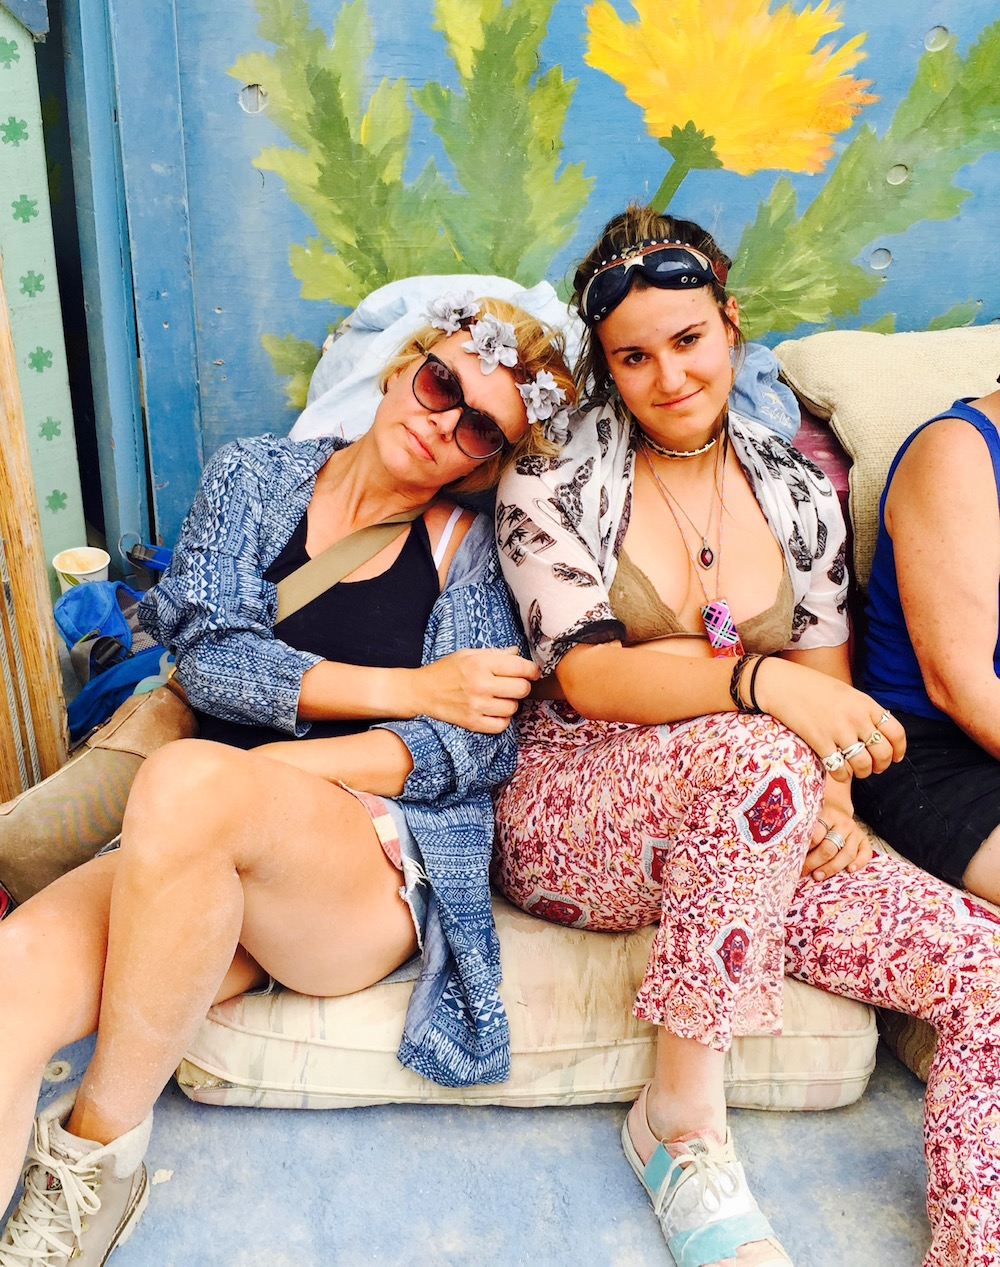 My daughter Sam and me at Burning Man 2016